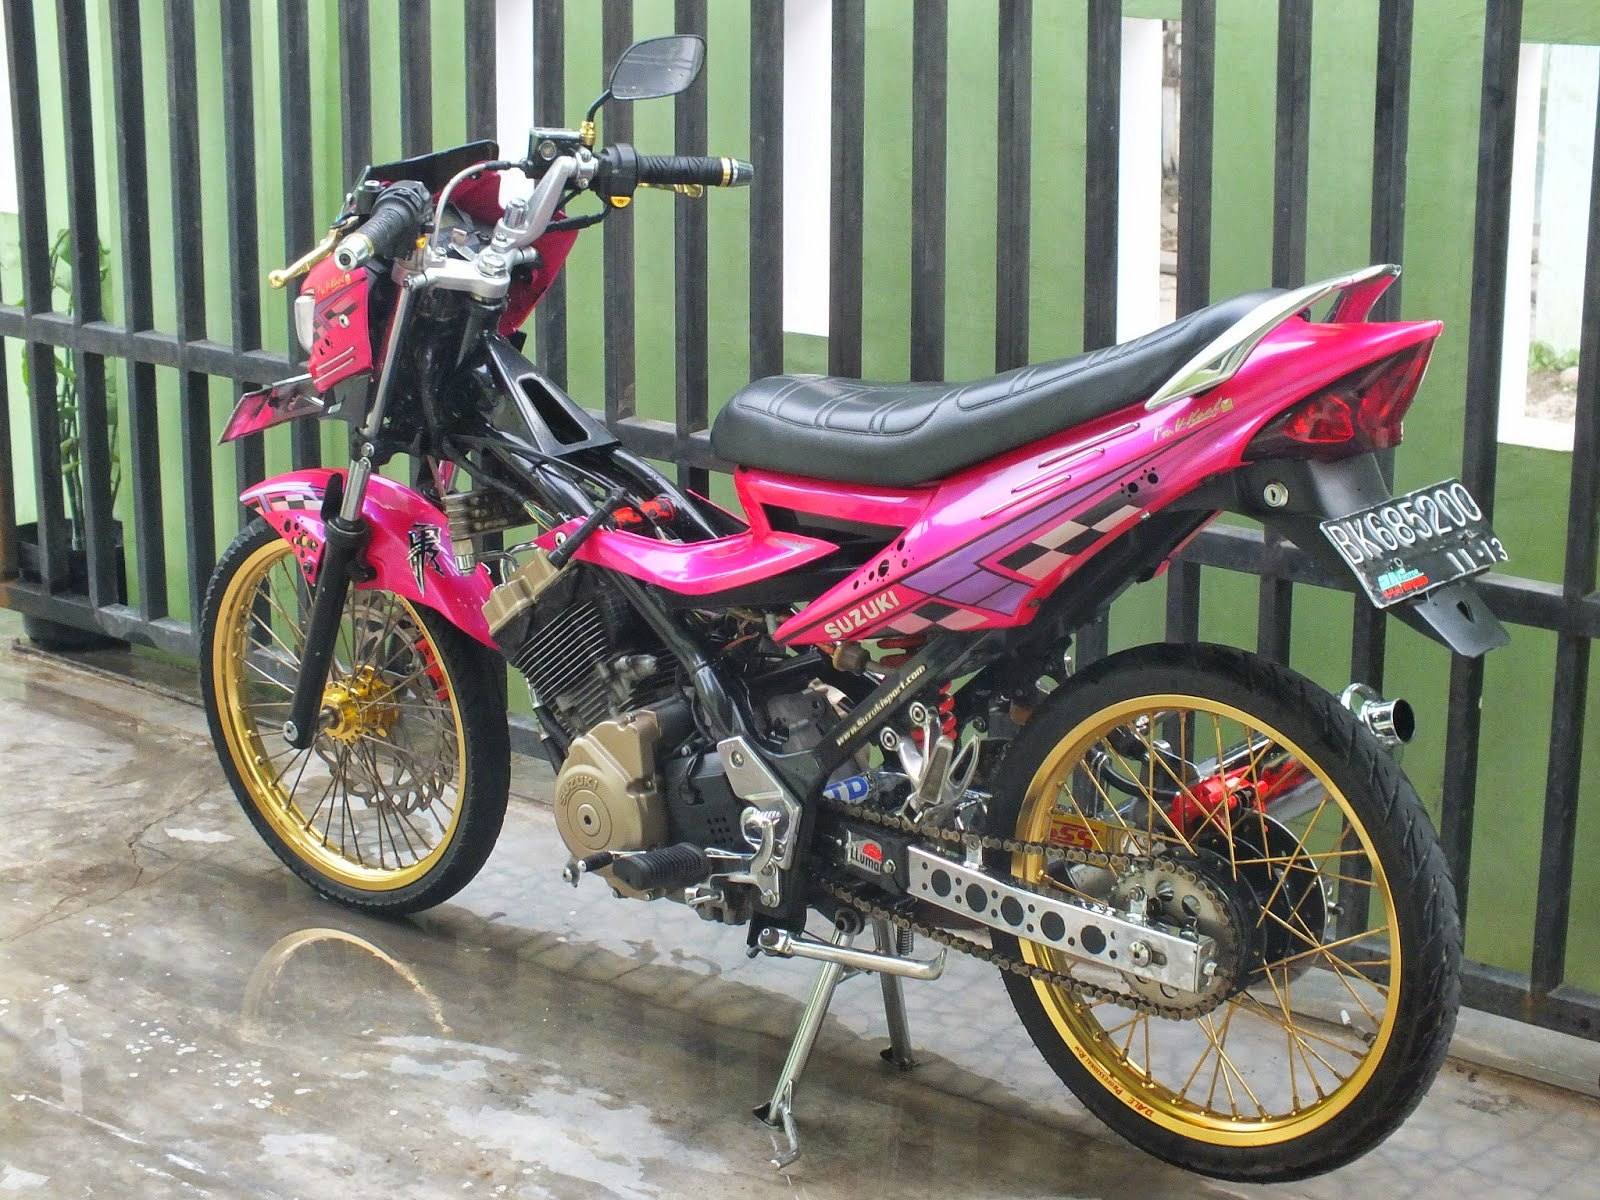 Vega Zr Modifikasi Drag